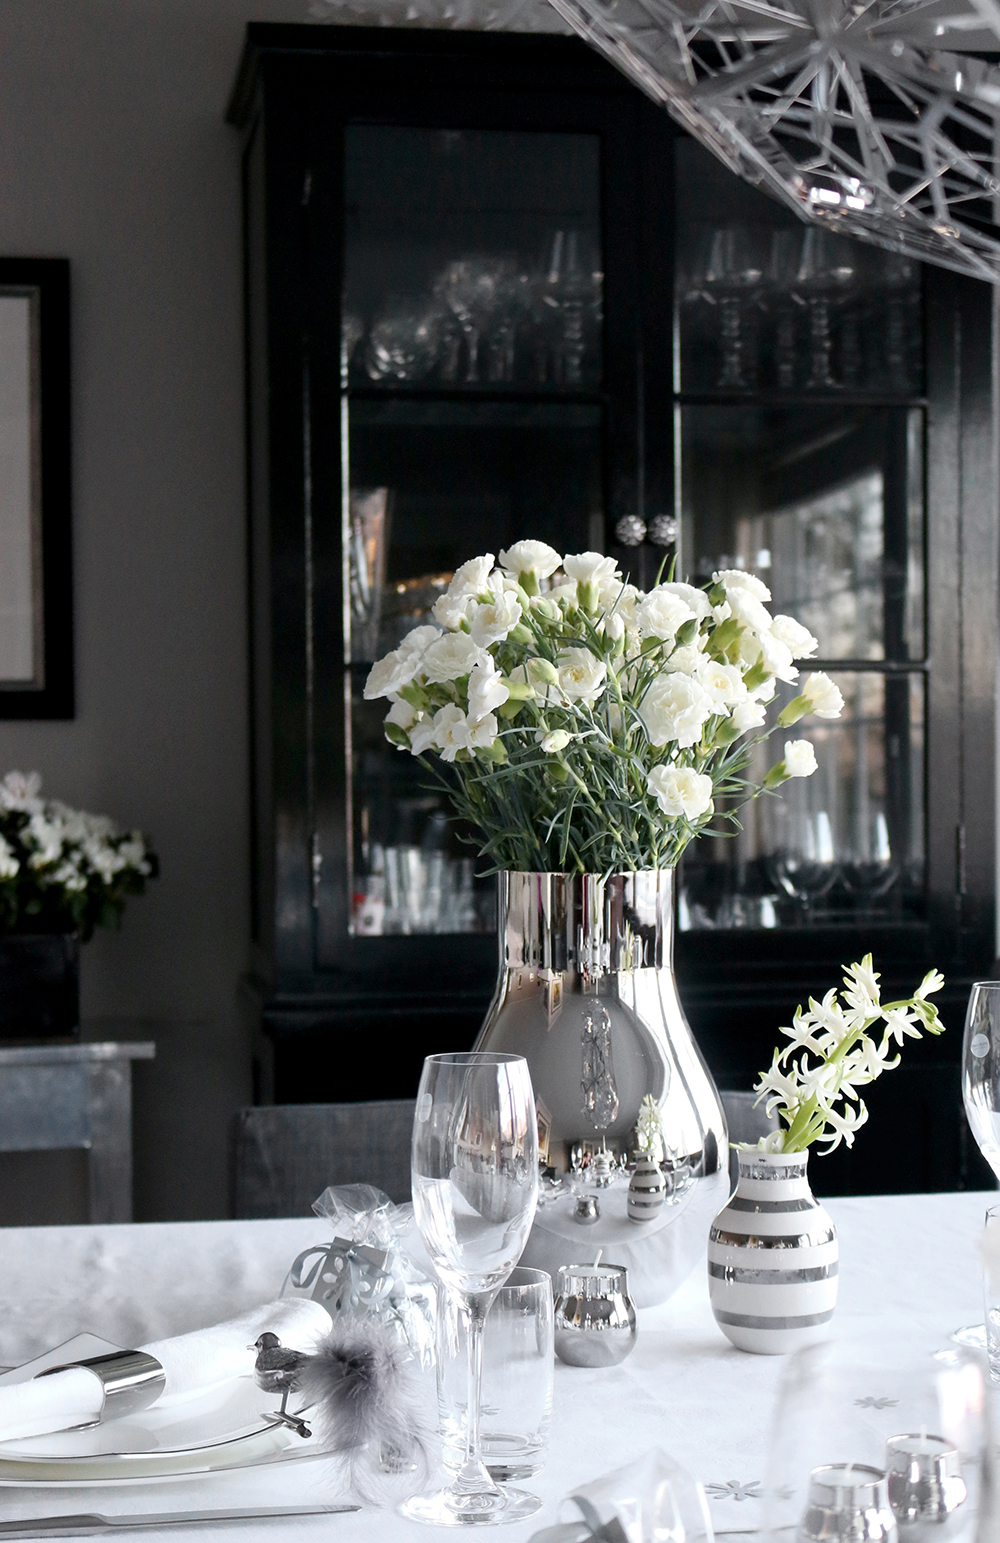 New-Year-tablesetting-1